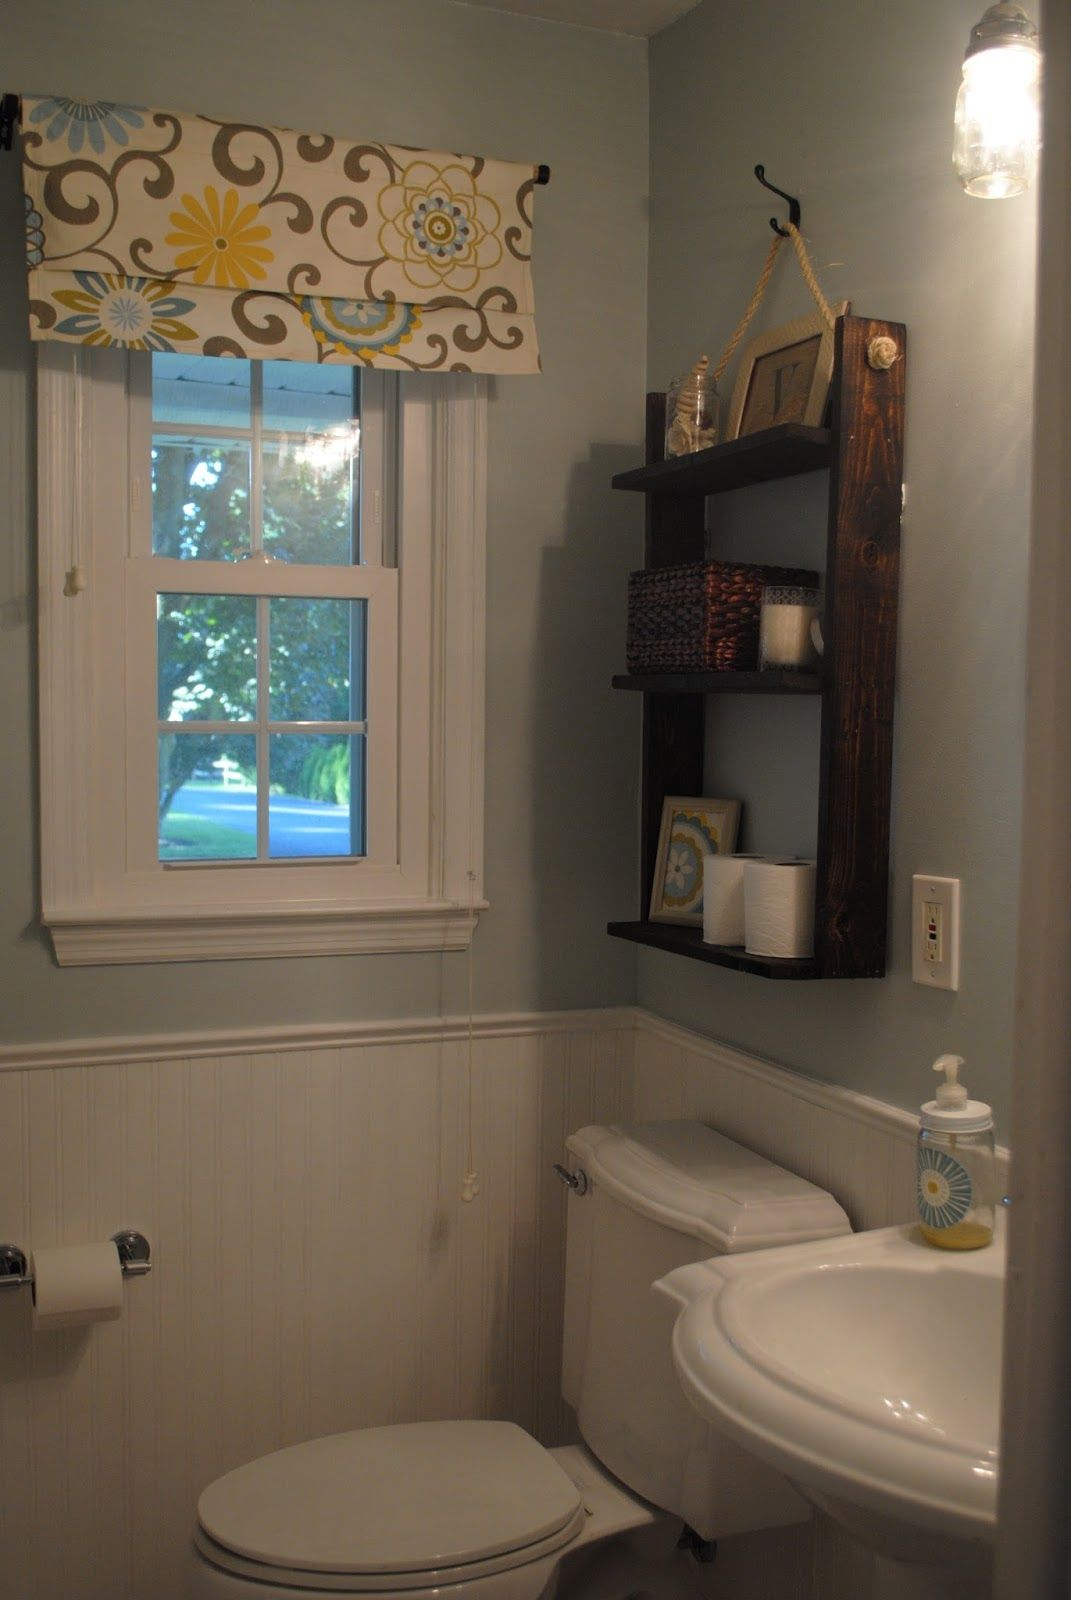 REVEAL: $100 Small Bathroom Makeover!!! (Tons Of Ideas For